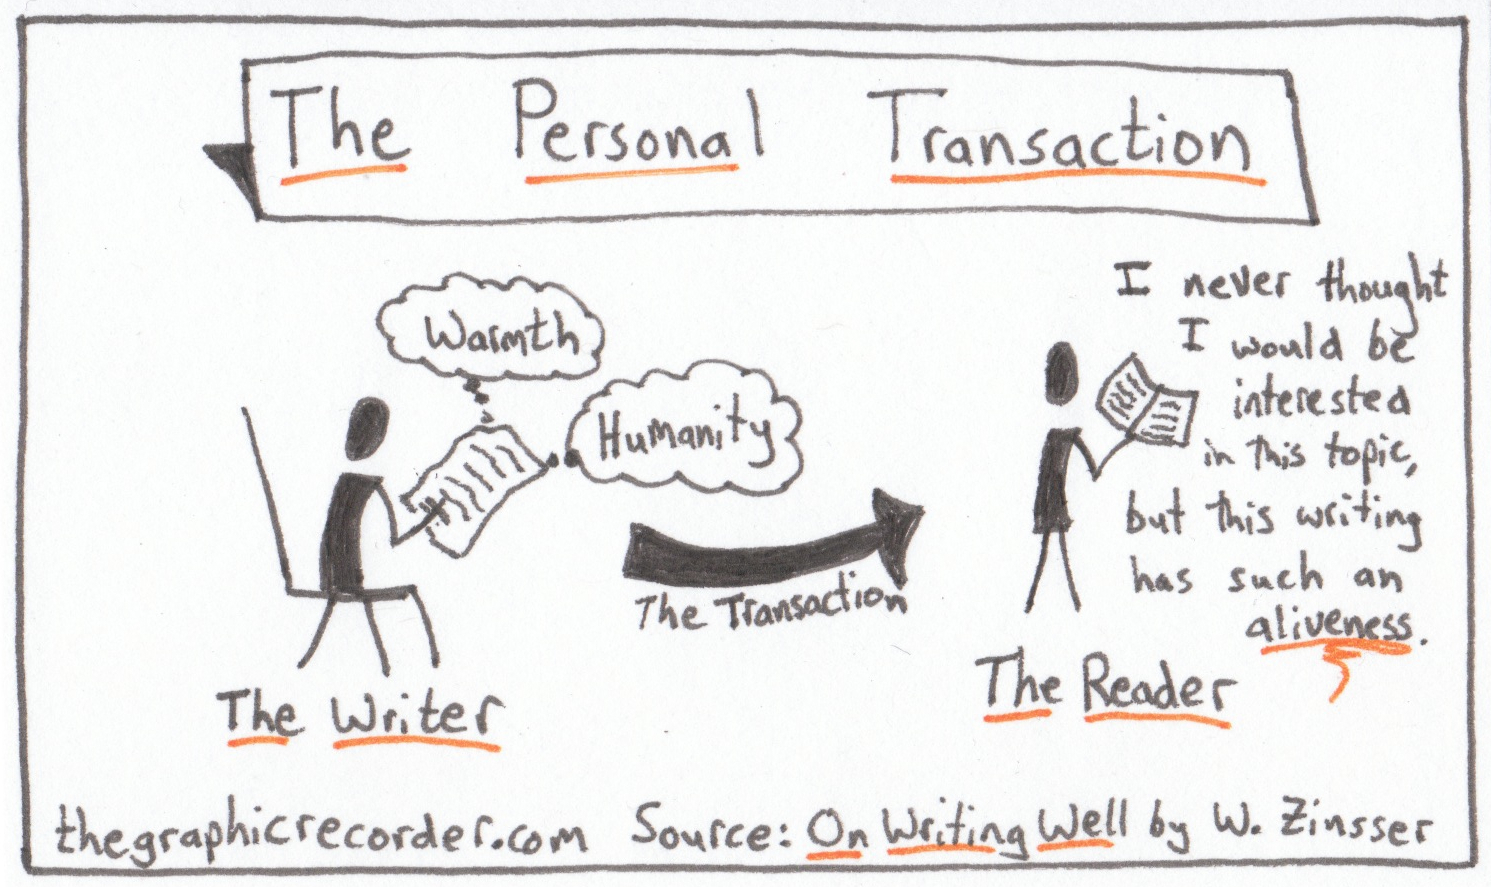 The Graphic Recorder - One Card One Concept - The Personal Transaction - William Zinsser - On Writing Well